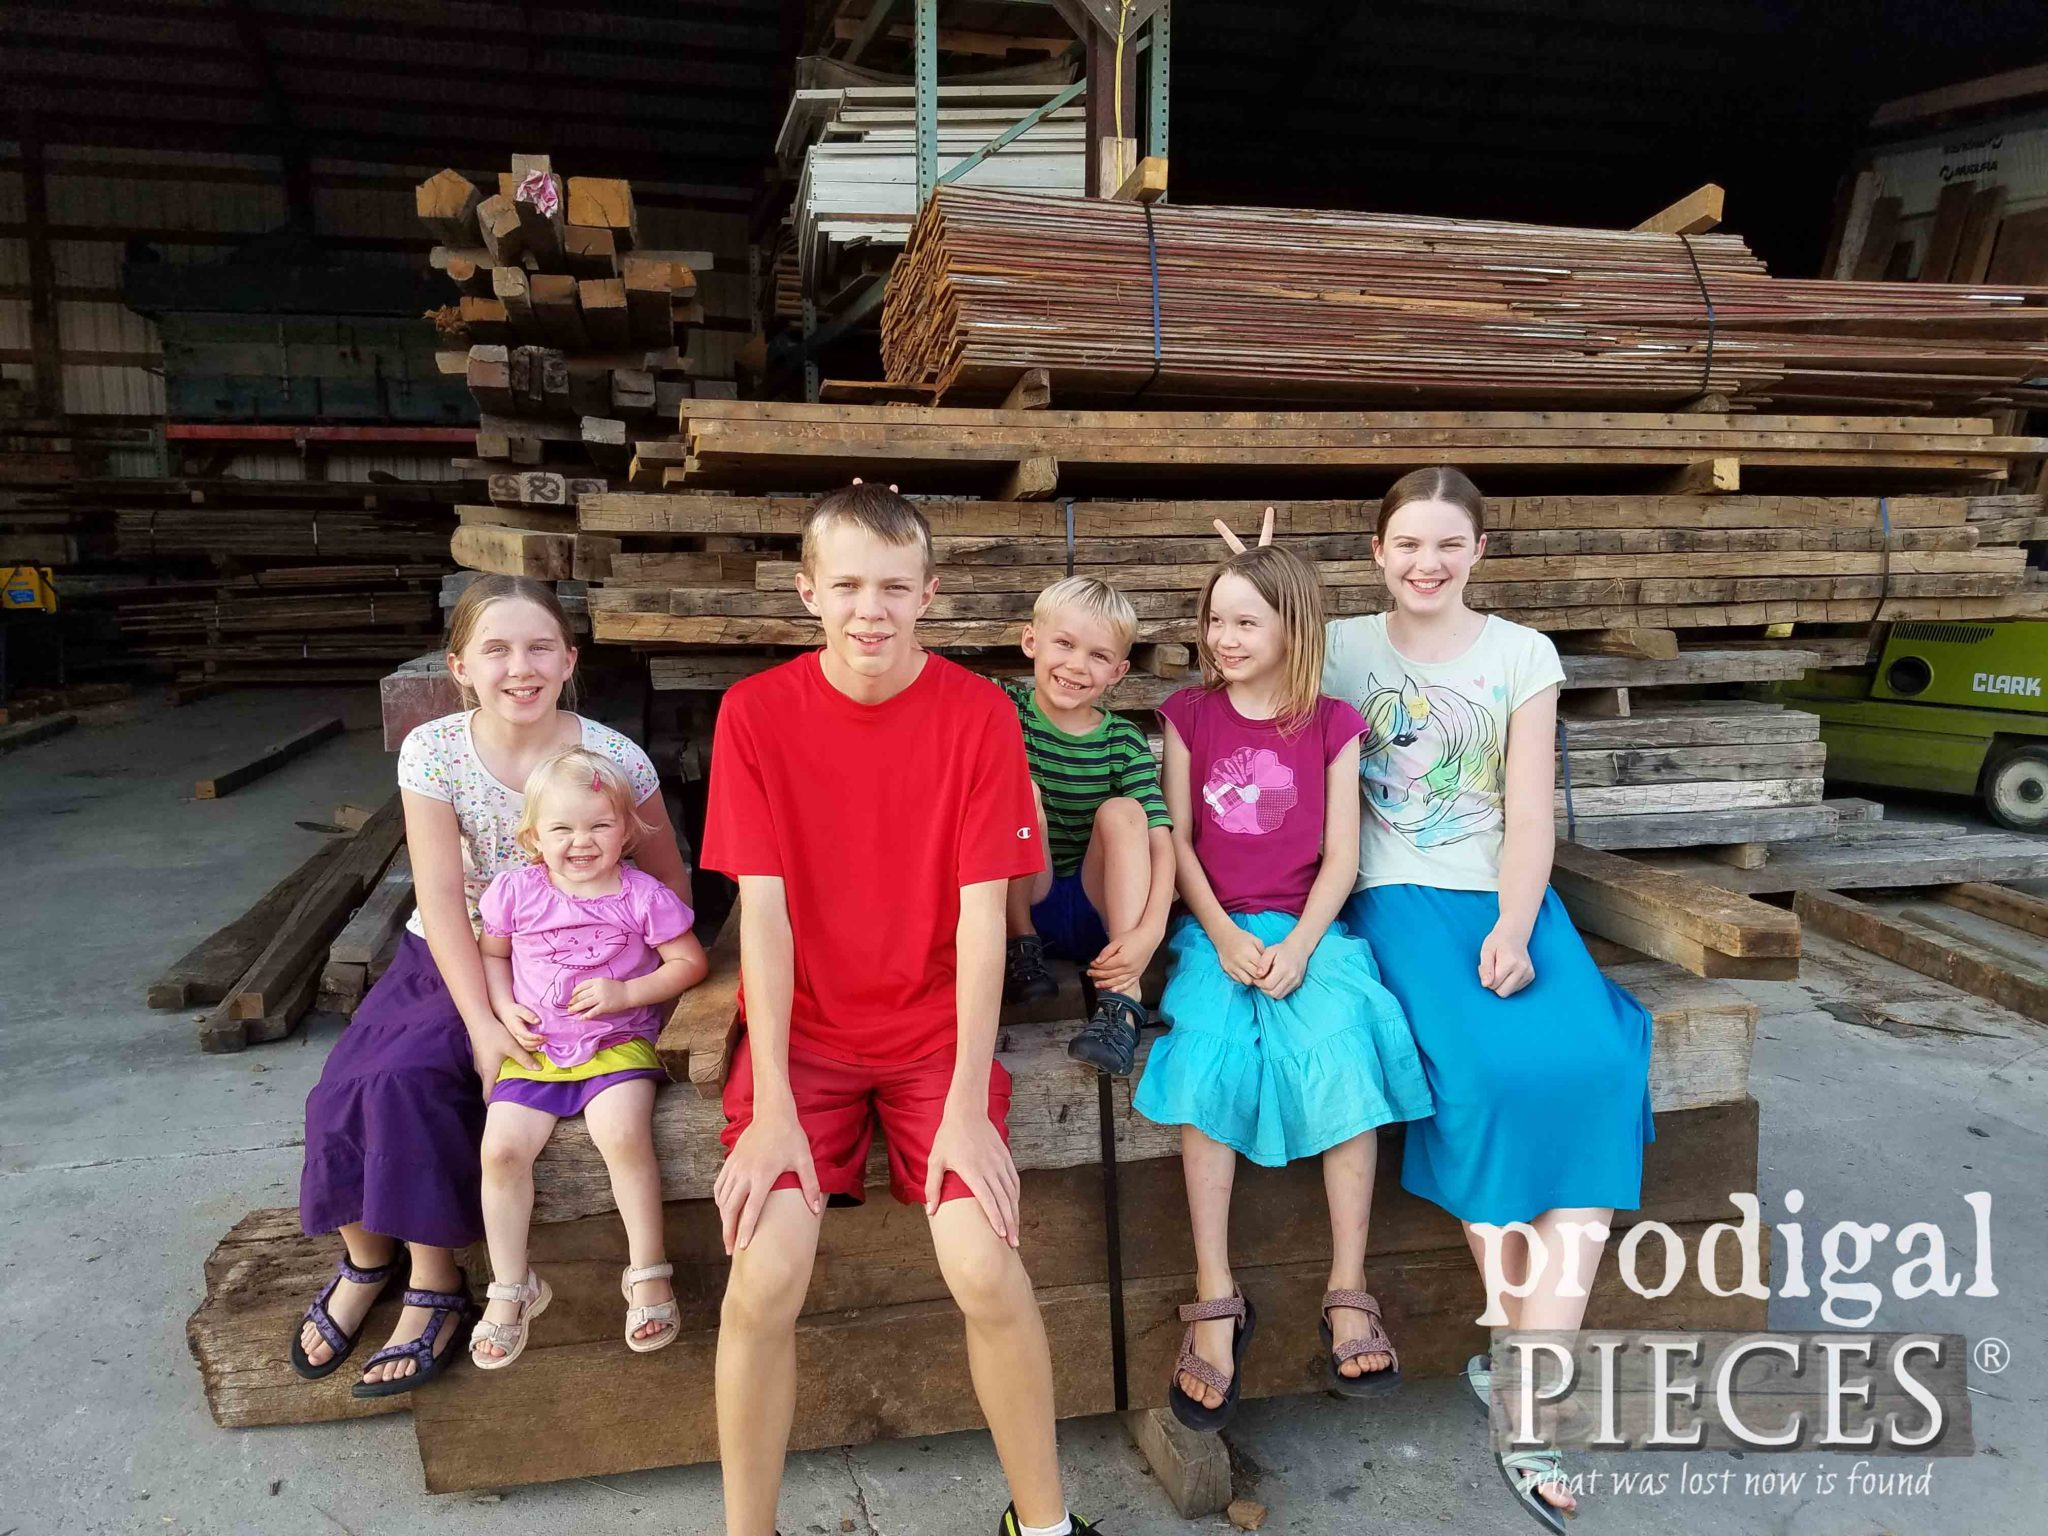 Kids Sitting on Reclaimed Wood Pile | prodigalpieces.com